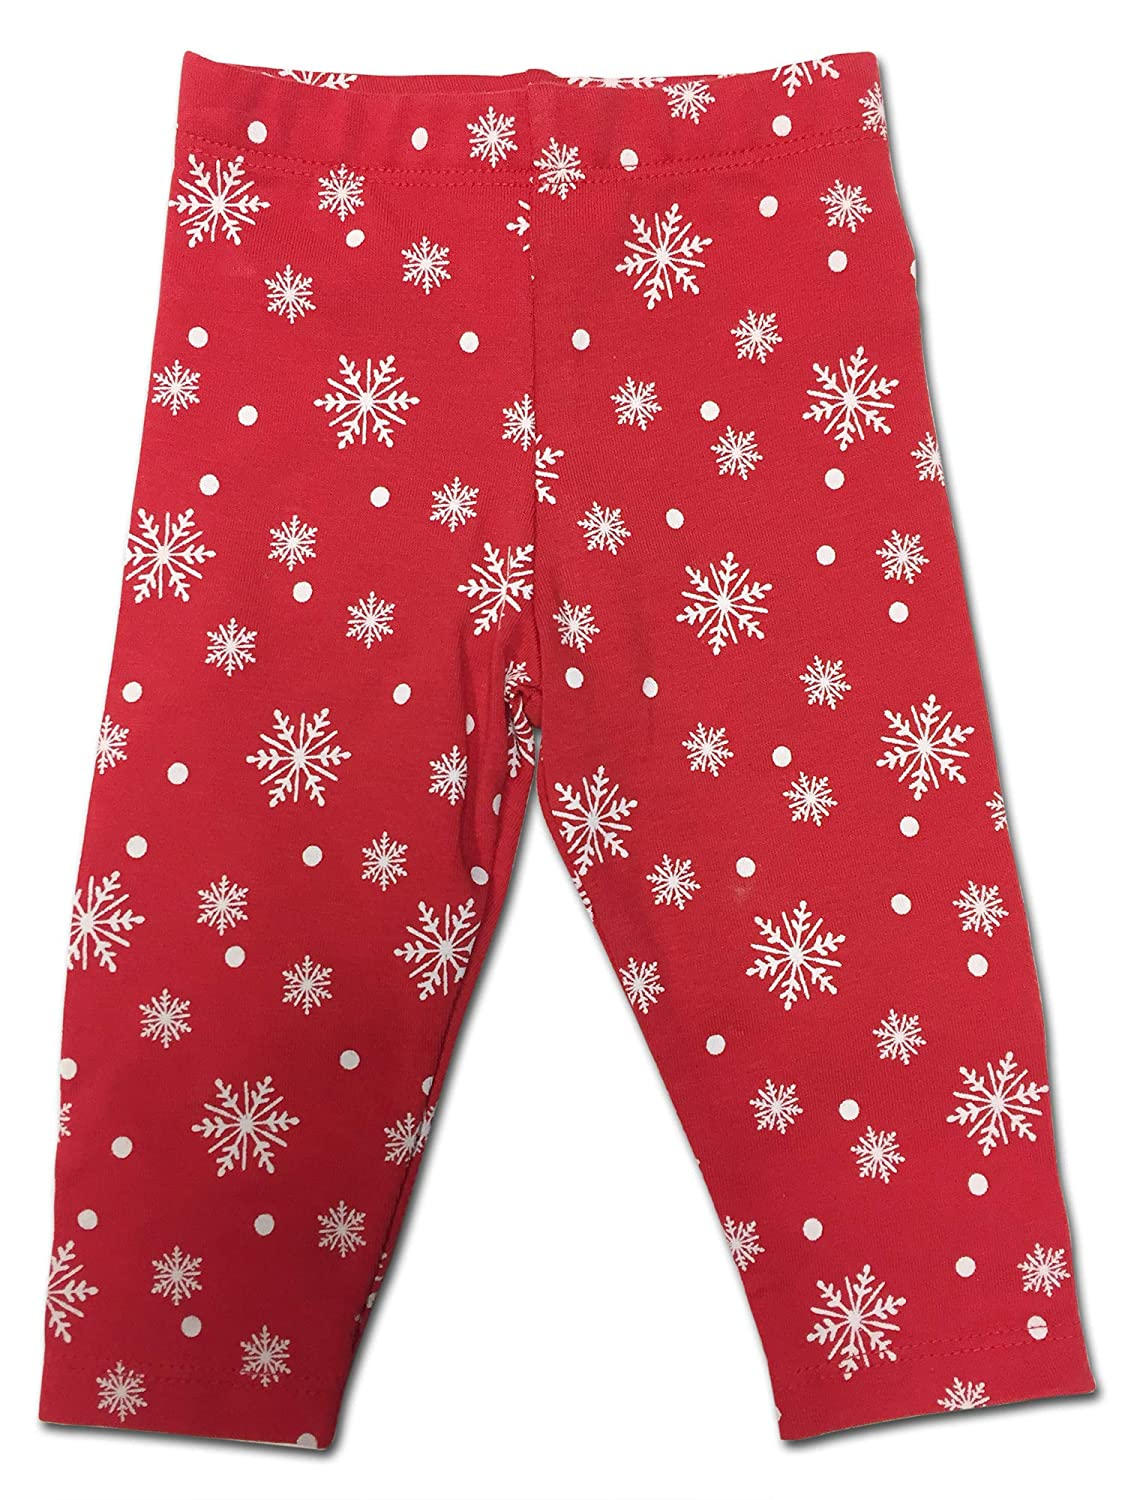 Sconosciuto F/&F Baby Girls Festive Christmas Snow Cute Unicorn And Renna Glitter White T-Shirt And Red Snowflake Pants